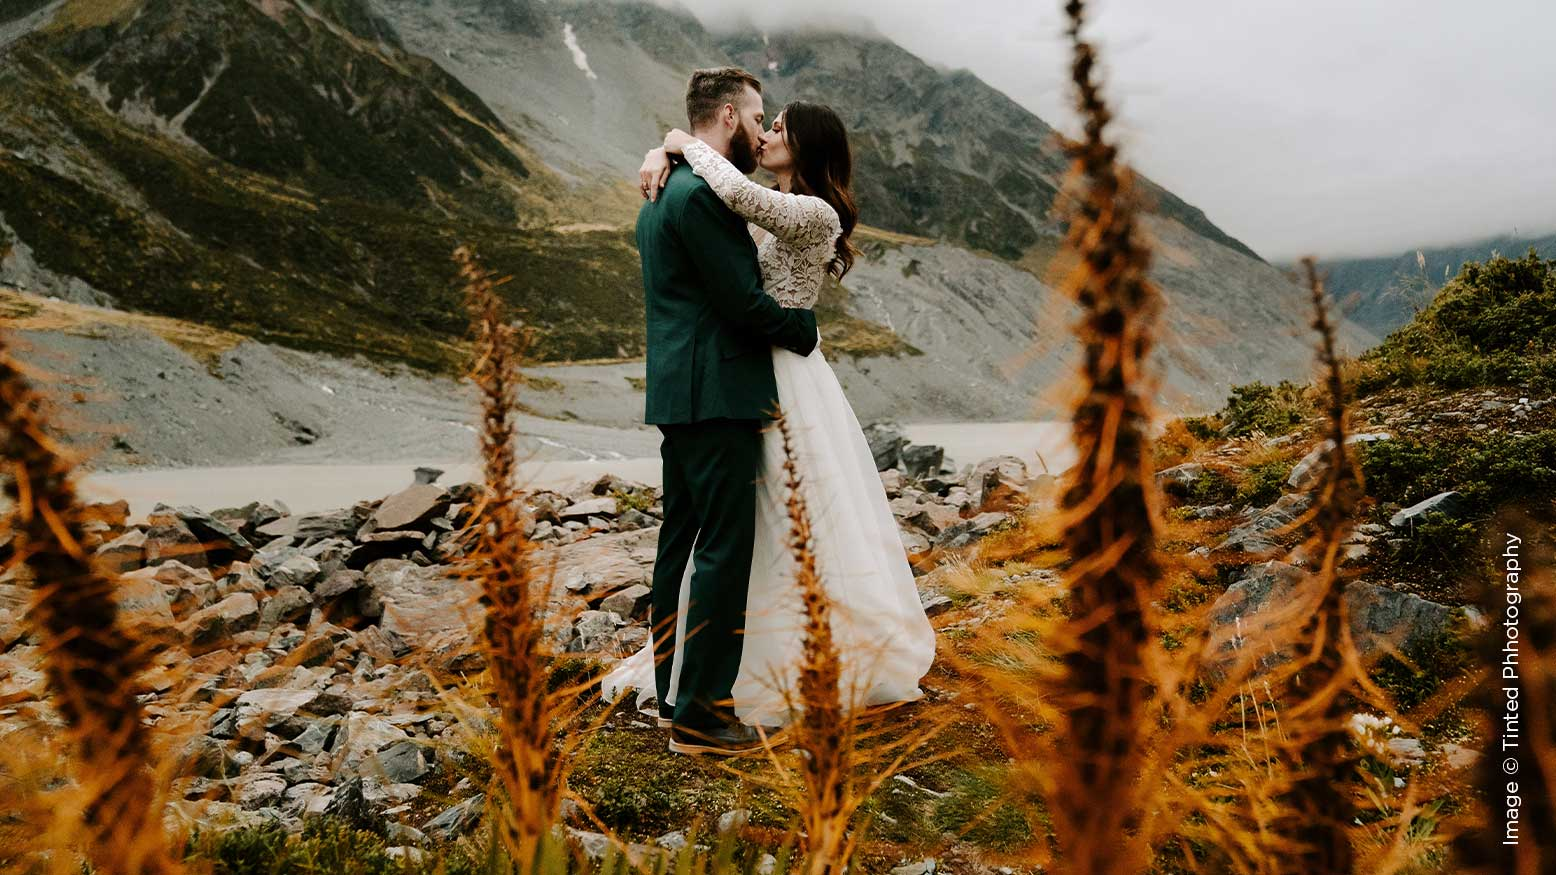 How to Create Once-In-A-Lifetime Elopement Images